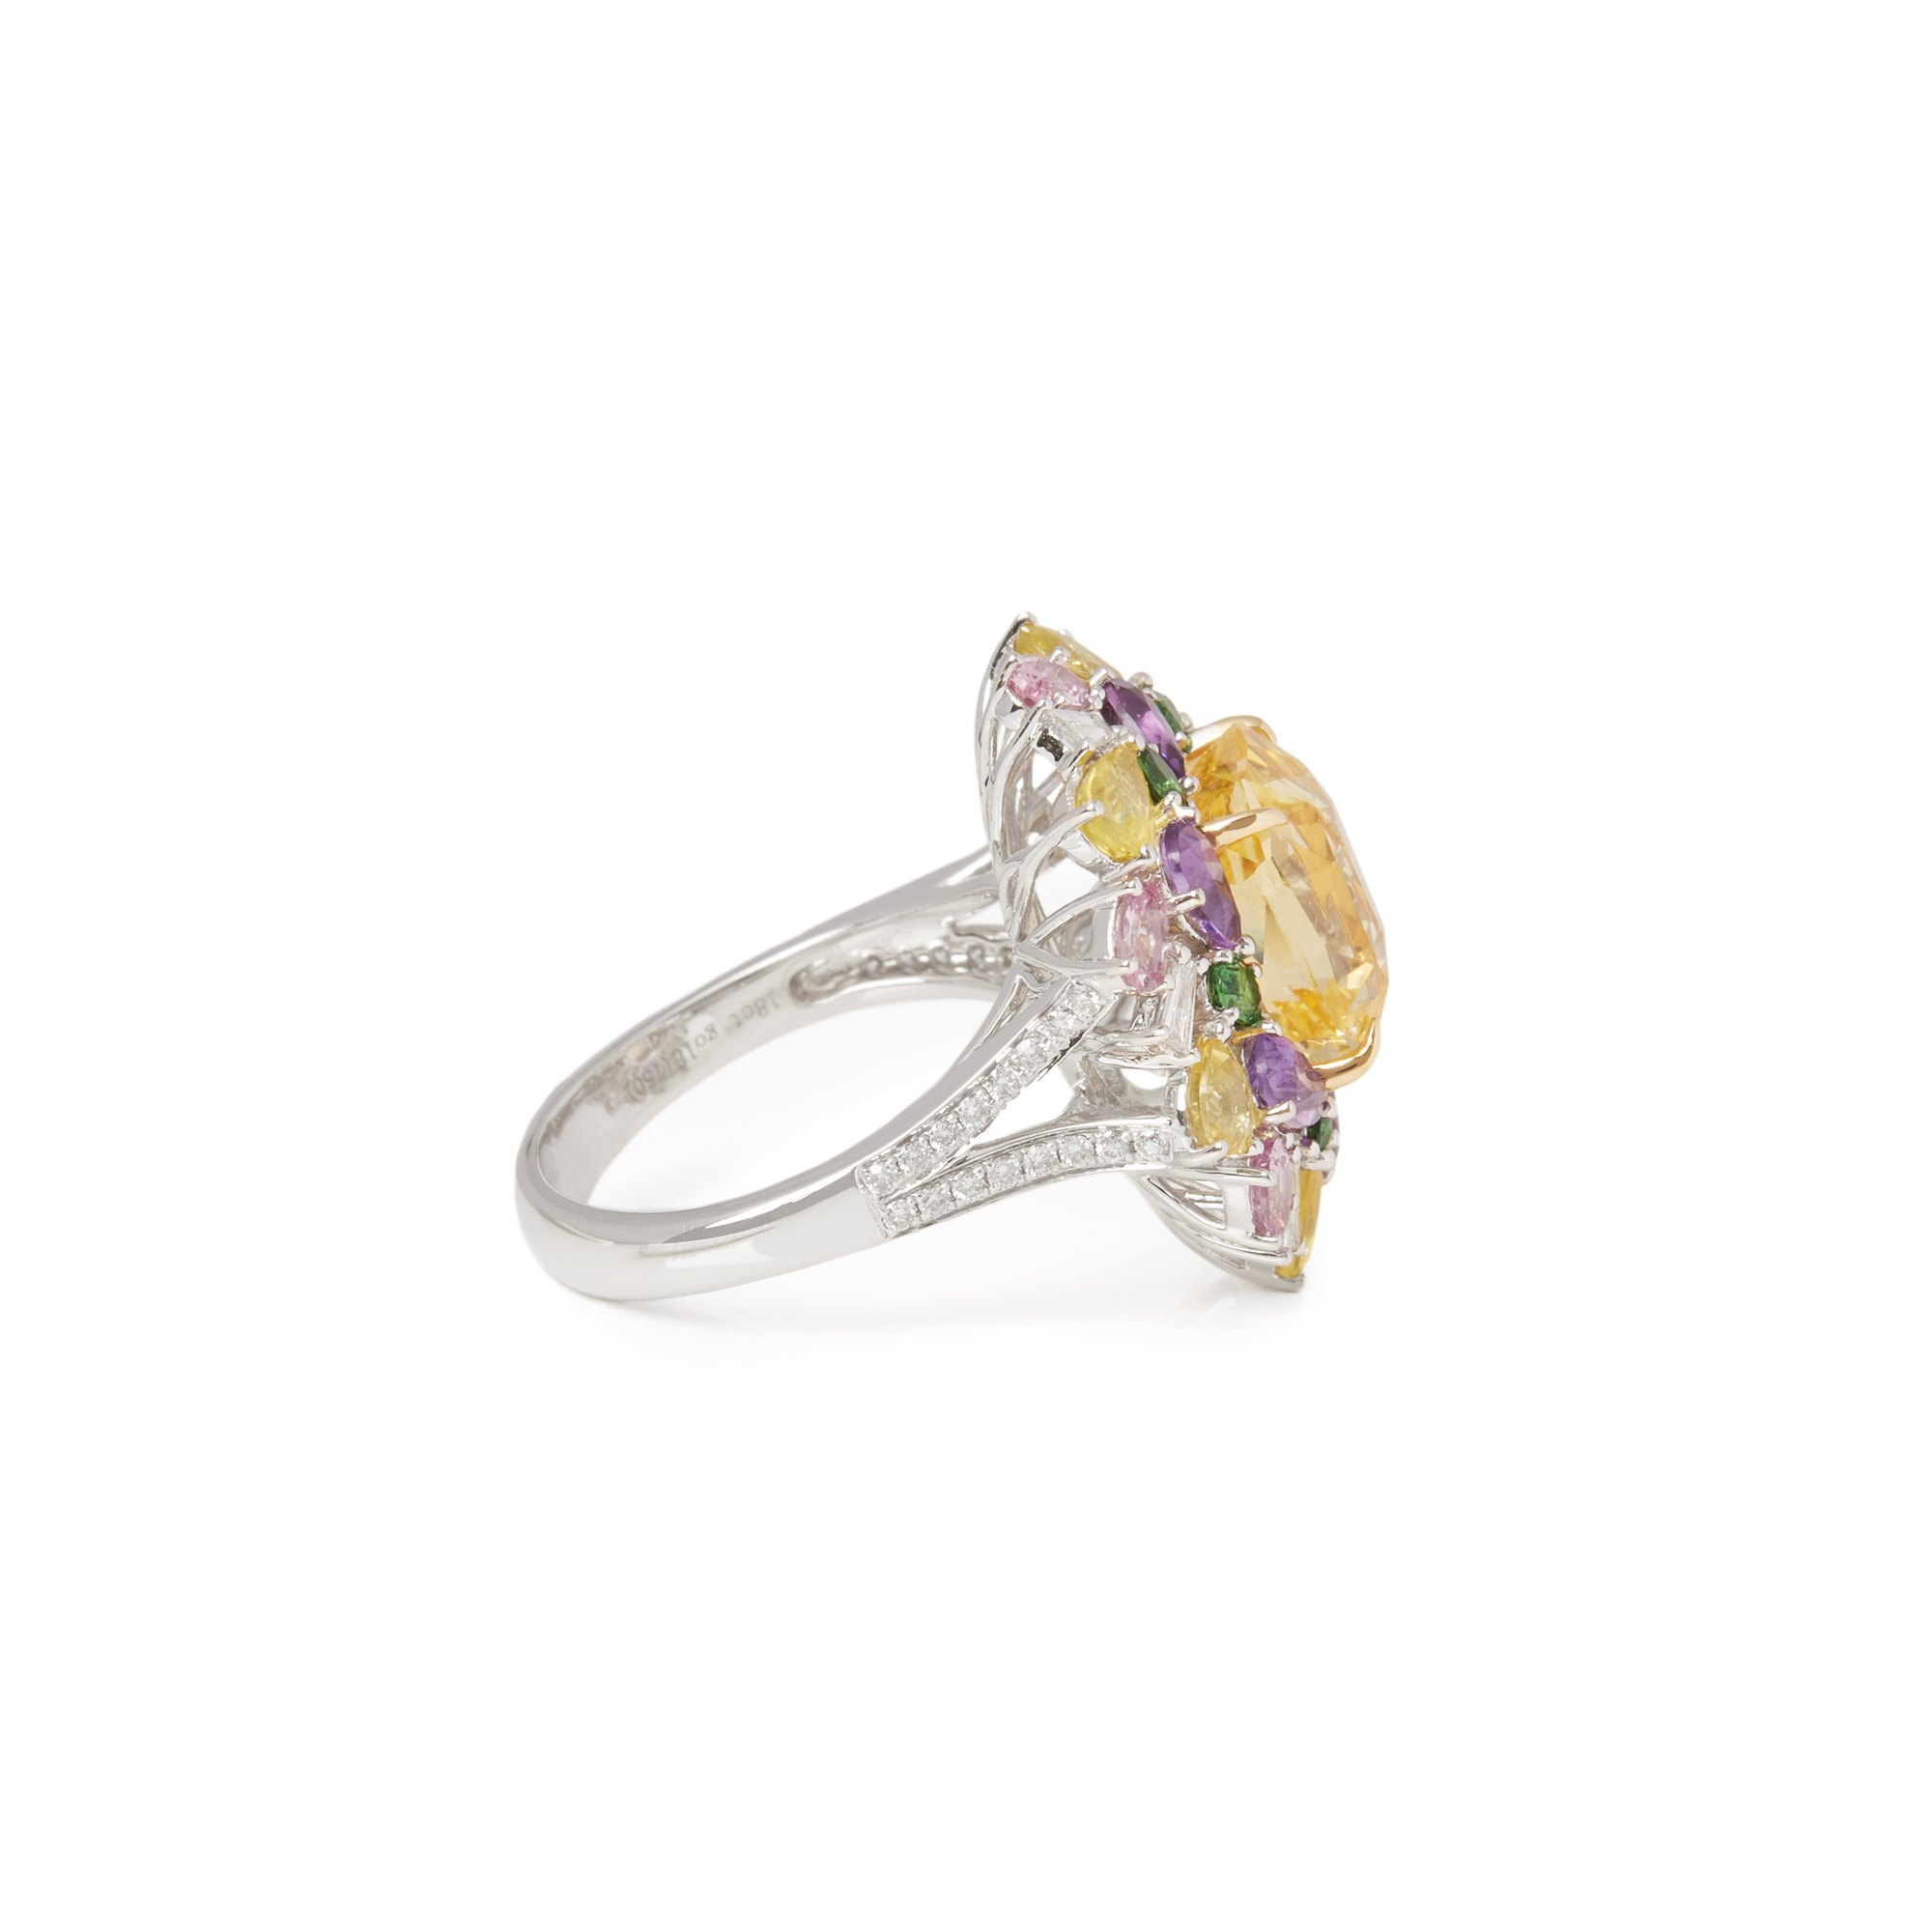 David Jerome 18k White Gold Yellow Sapphire and Diamond Ring